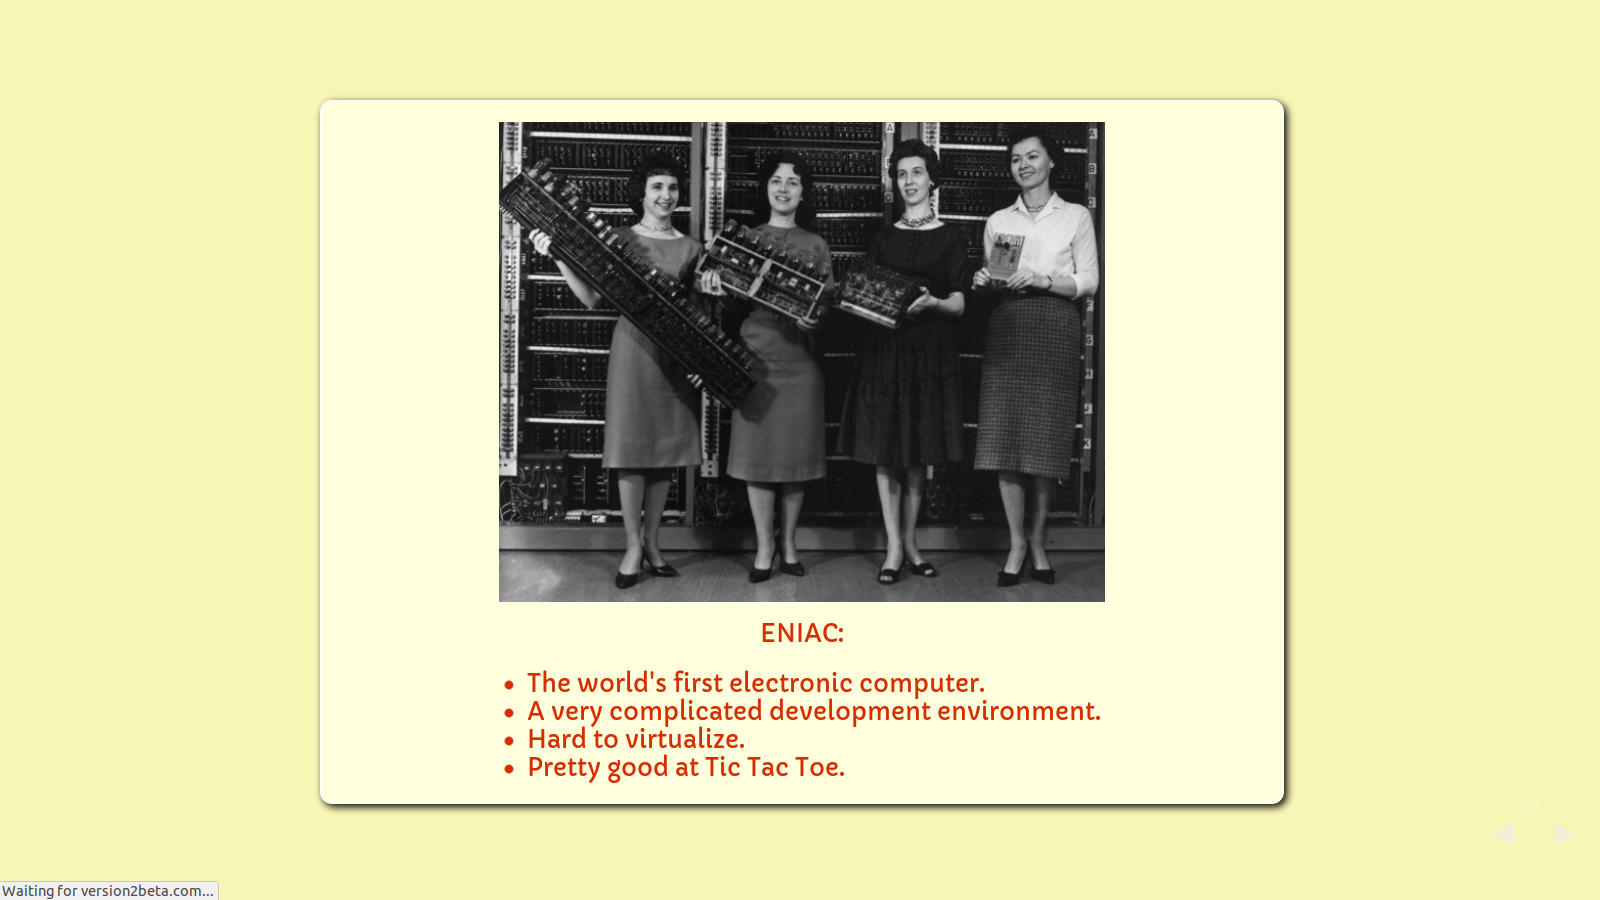 Slide: Eniac. The world's first general purpose electronic computer. A very complicated development environment. Hard to virtualize. Pretty good at Tic Tac Toe.